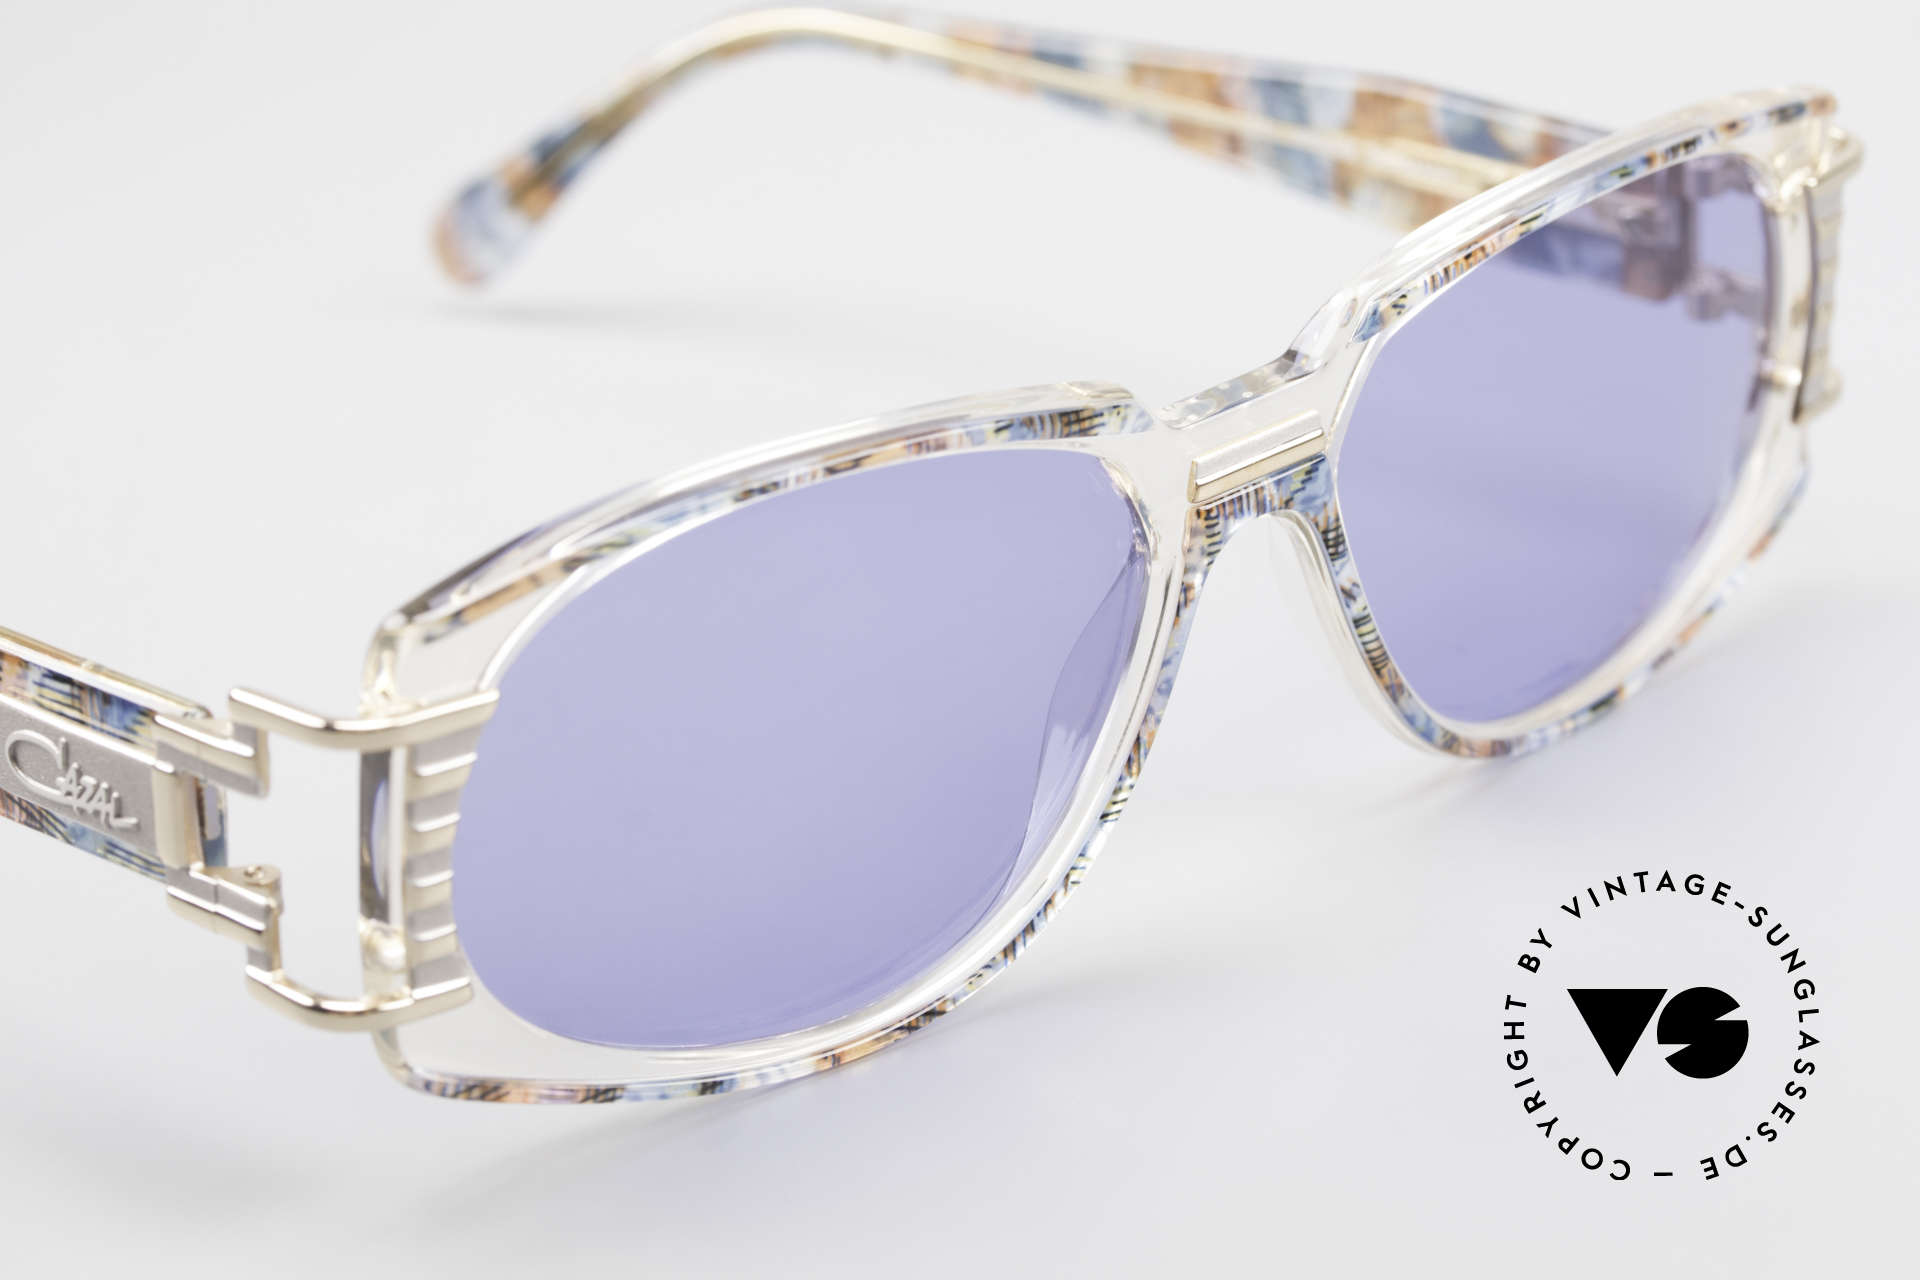 Cazal 372 Rare HipHop Vintage Shades 90s, never used, NOS (like all our rare vintage CAZAL eyewear), Made for Men and Women